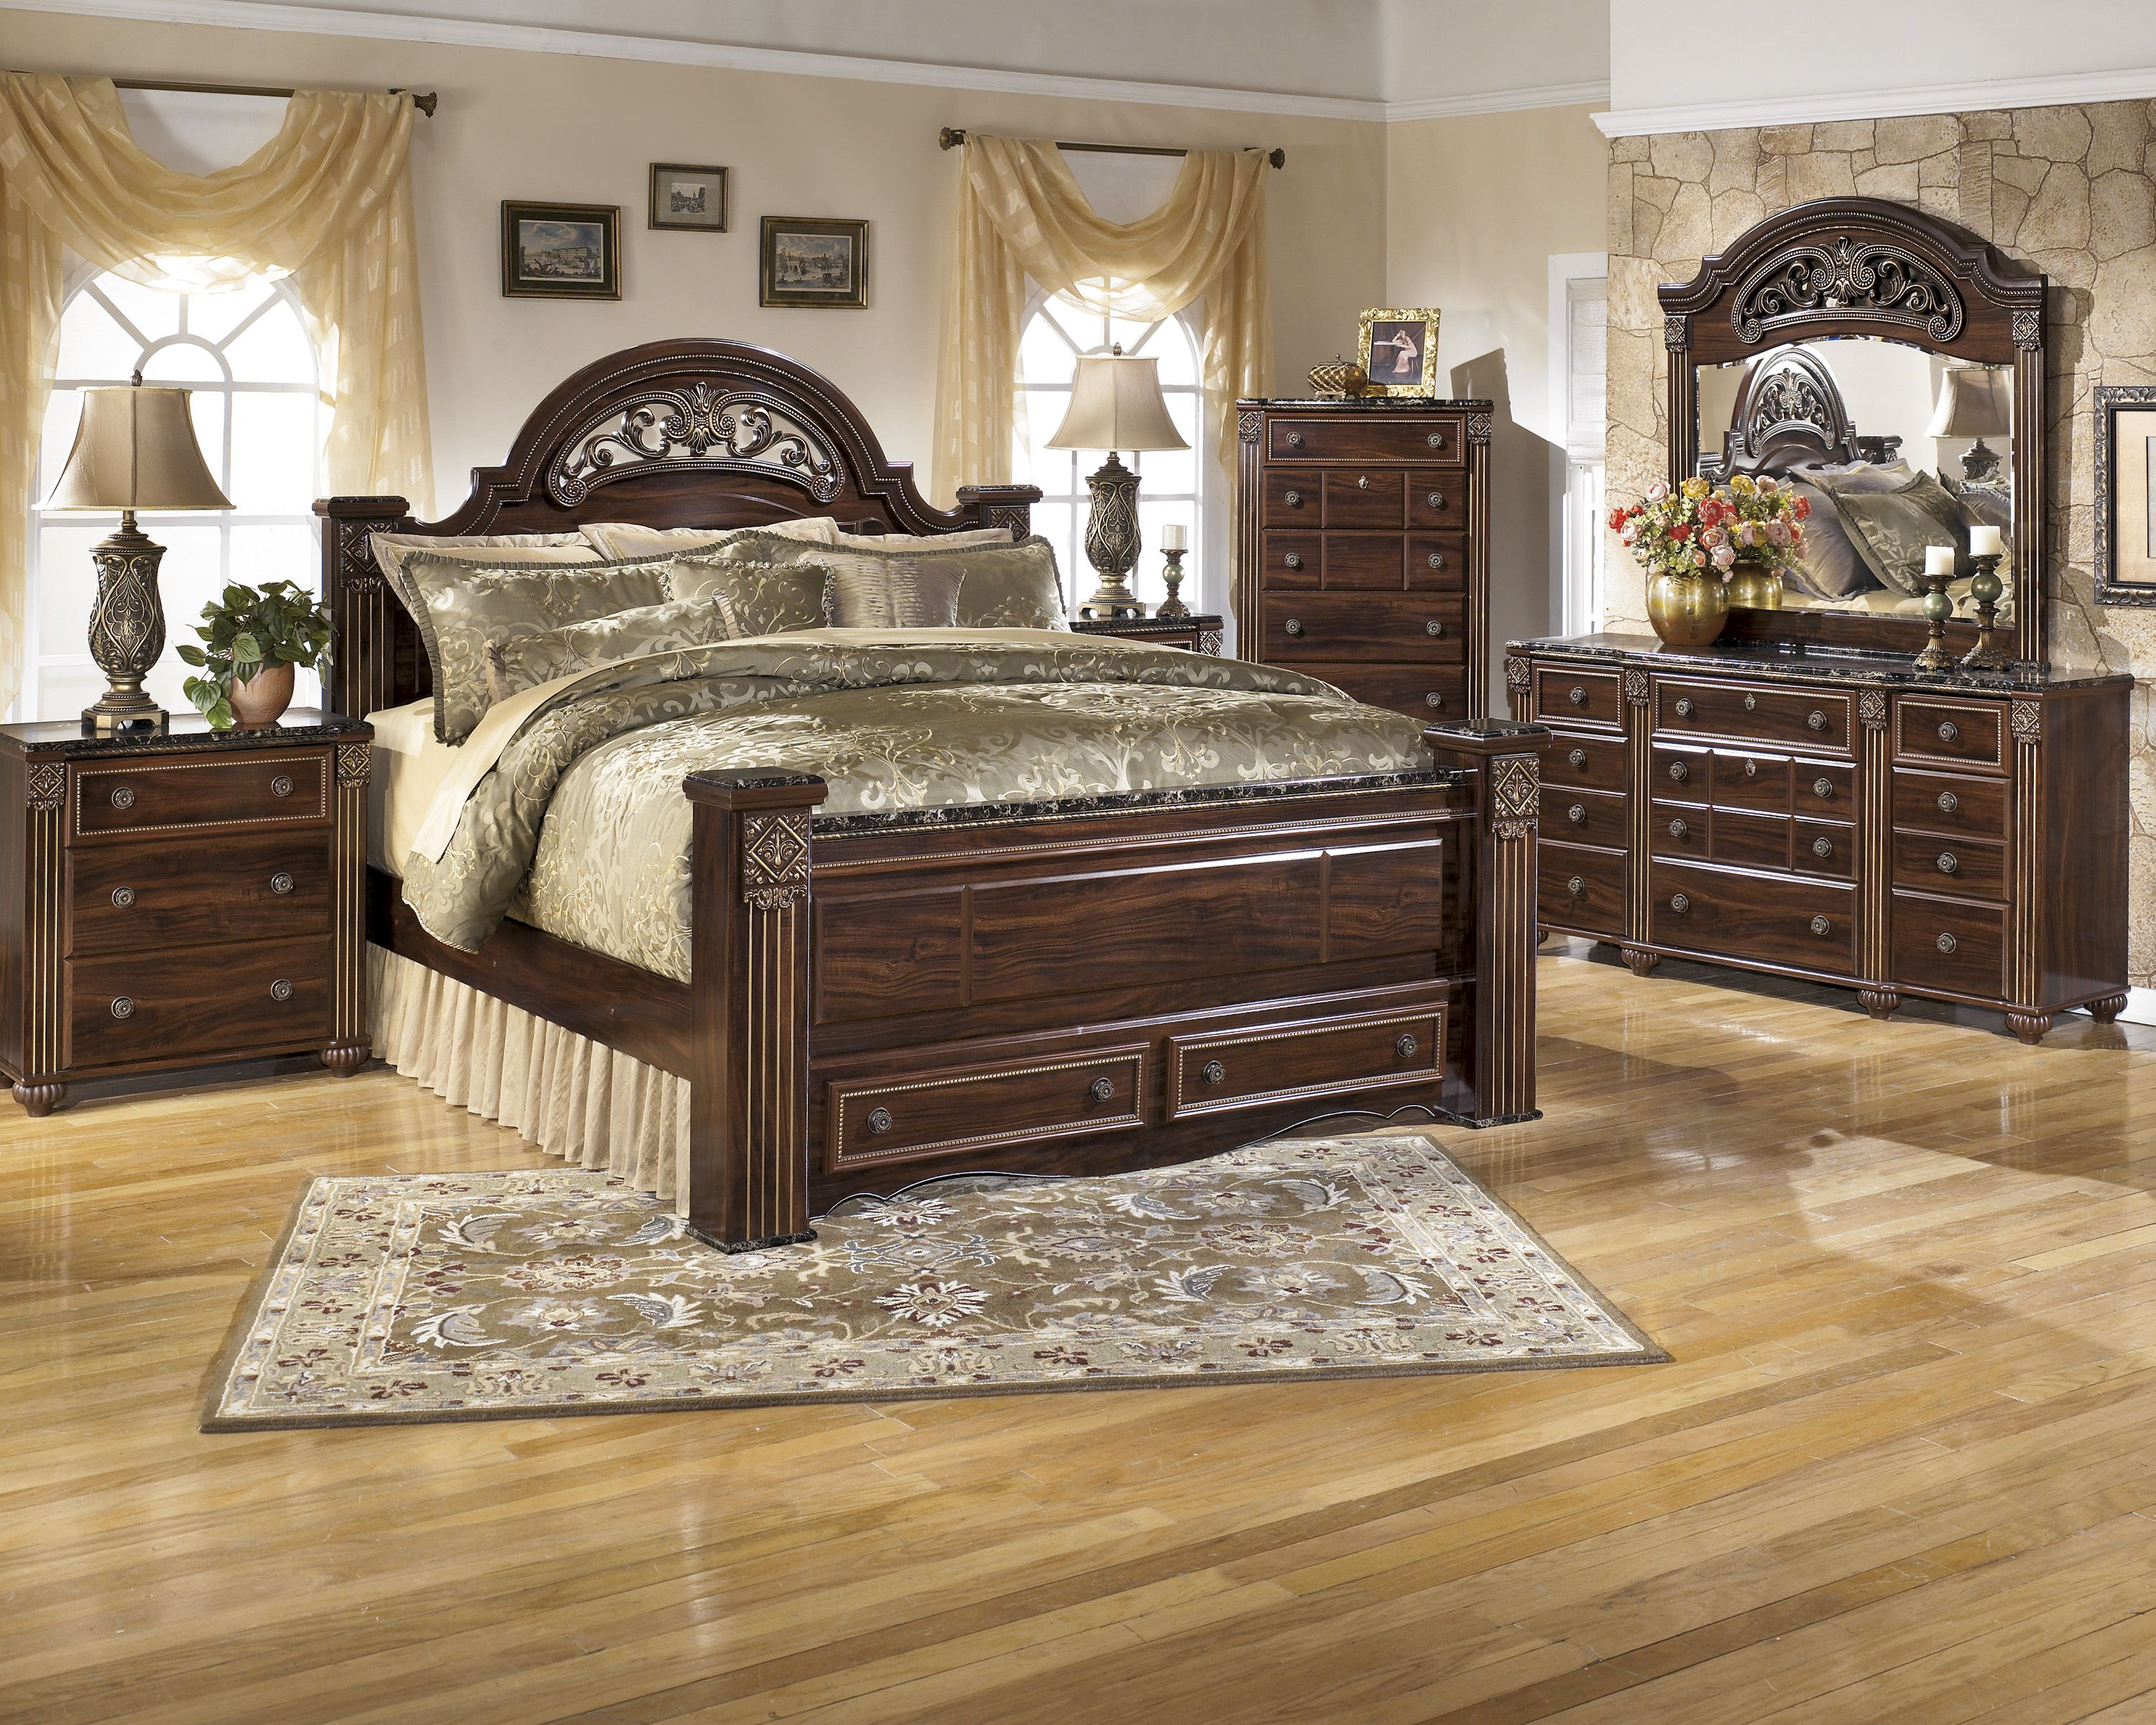 Bedroom Group Dallas Tx Furniture Store Shop Online For